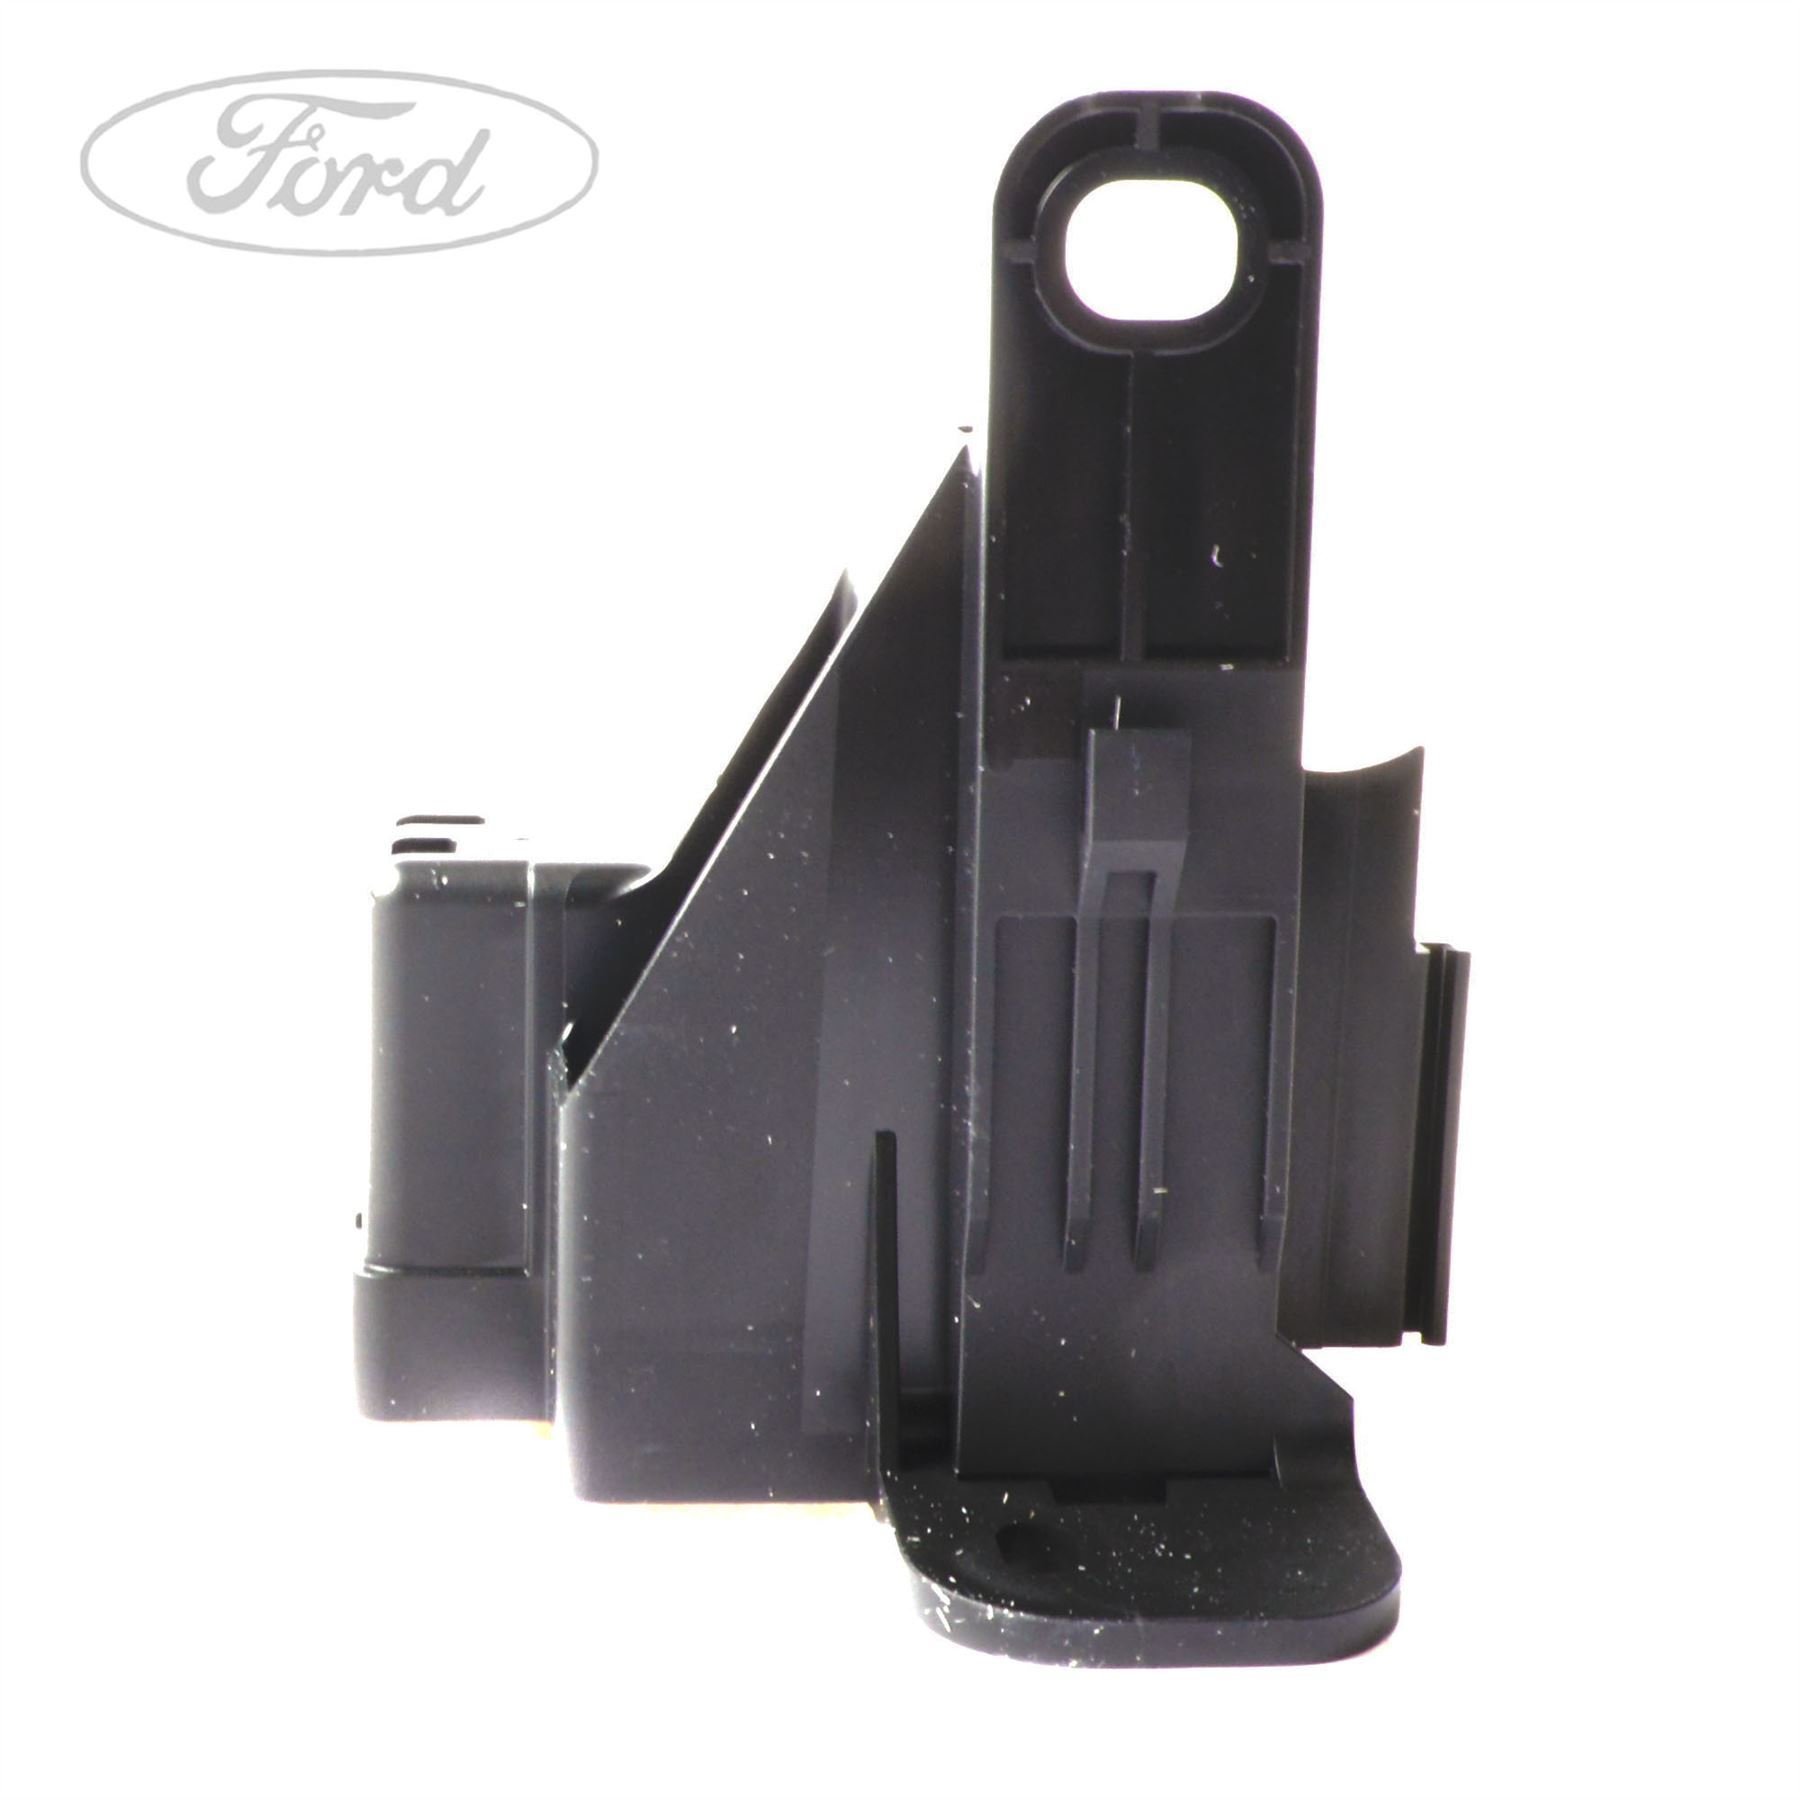 Genuine Ford Fiesta MK7 Additional Fuse Cover 1857572